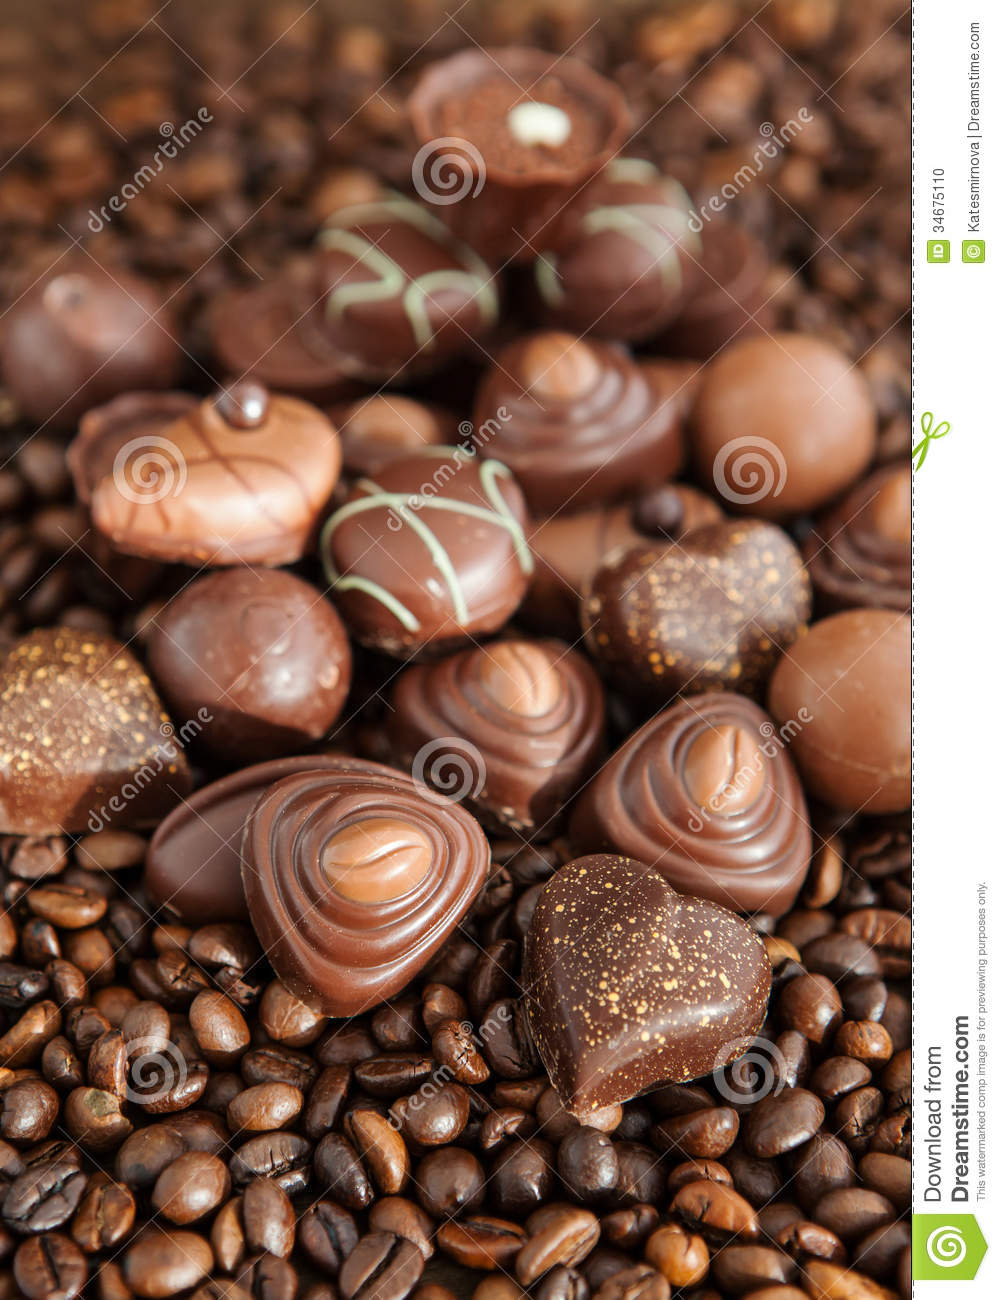 Assorted Chocolate Pralines On Coffee Beans Background Stock Photo ...